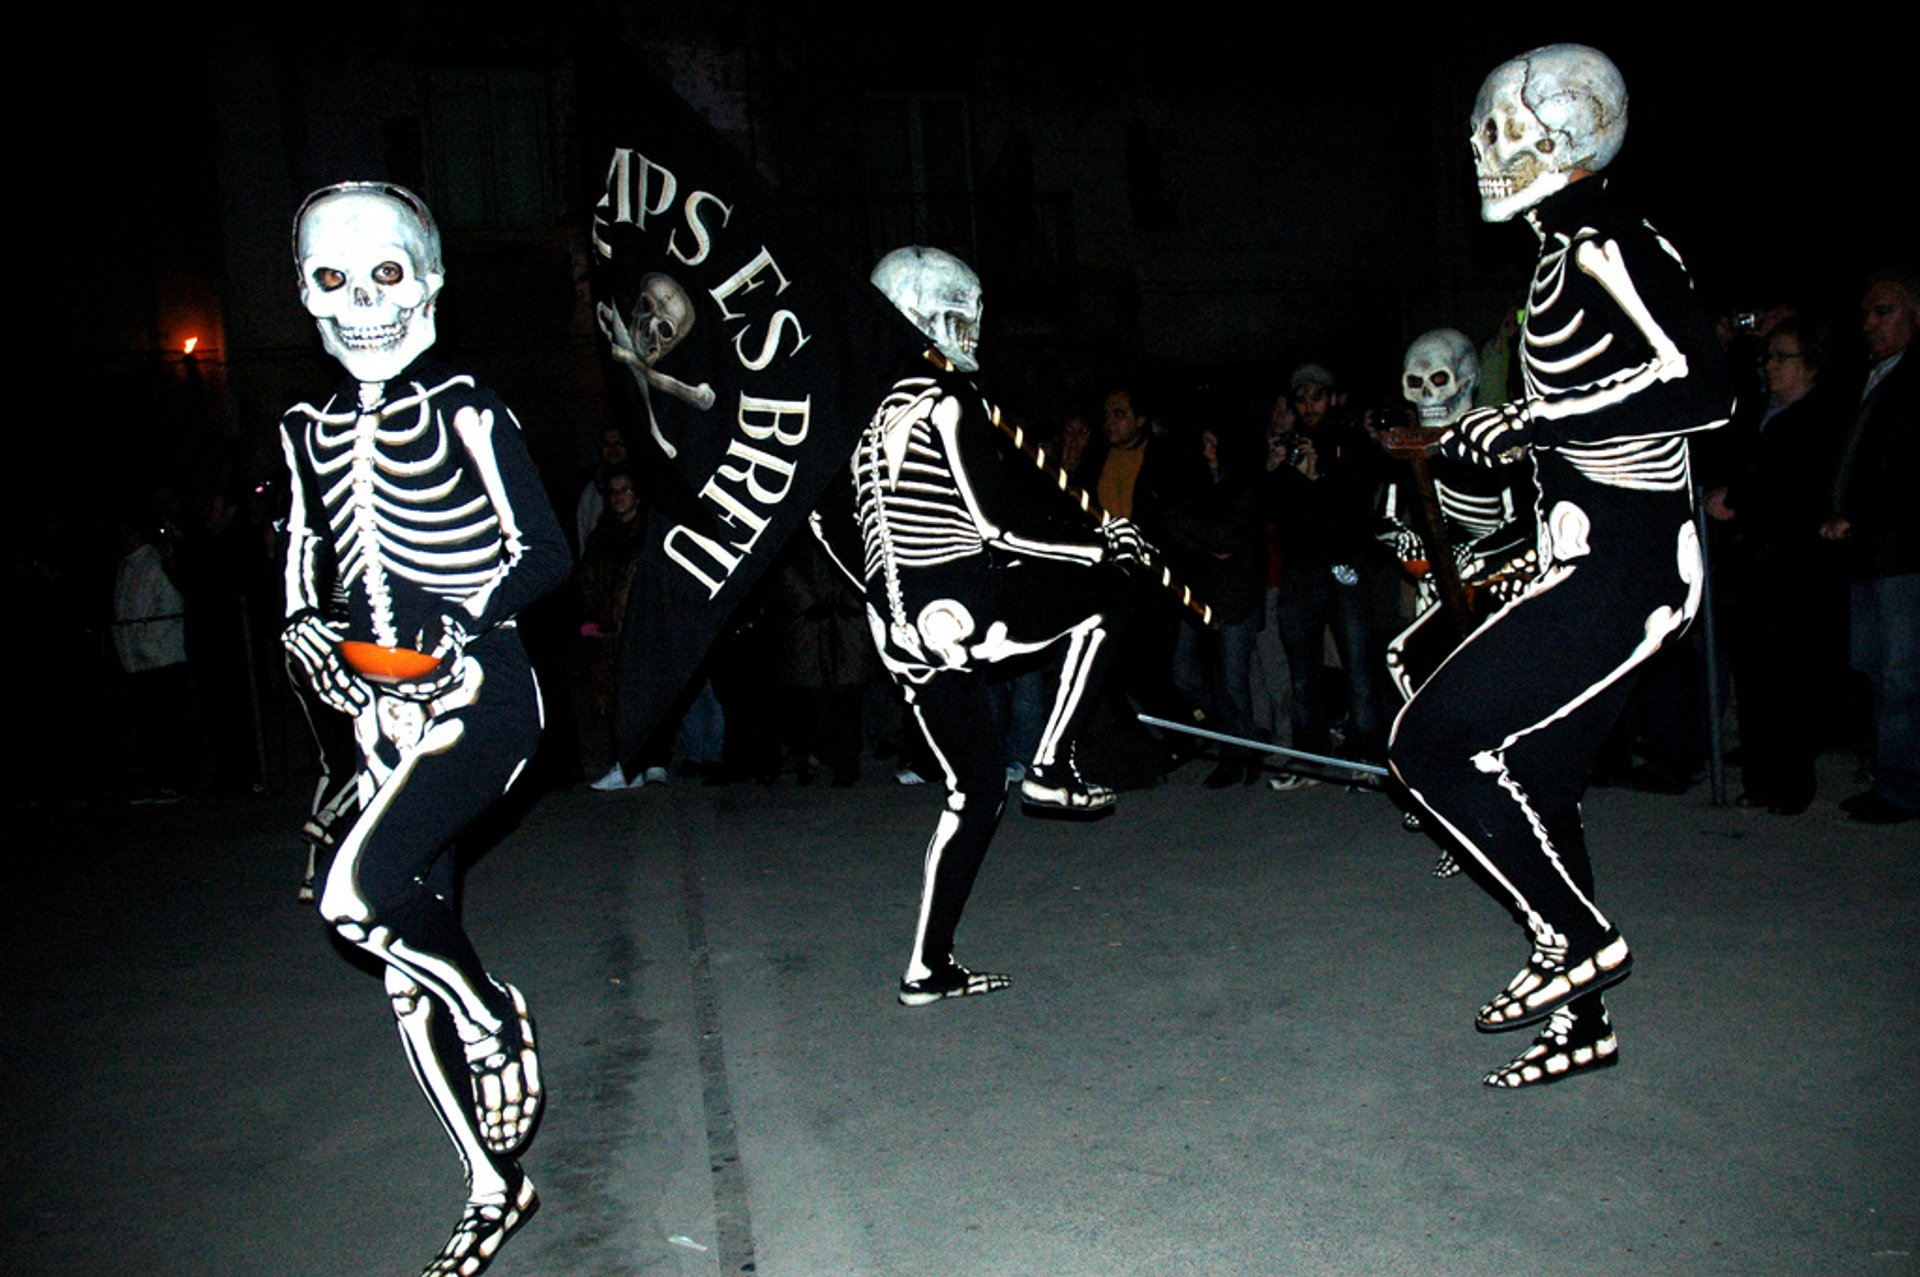 La Dansa de la Mort de Verges in Barcelona 2019 - Best Time